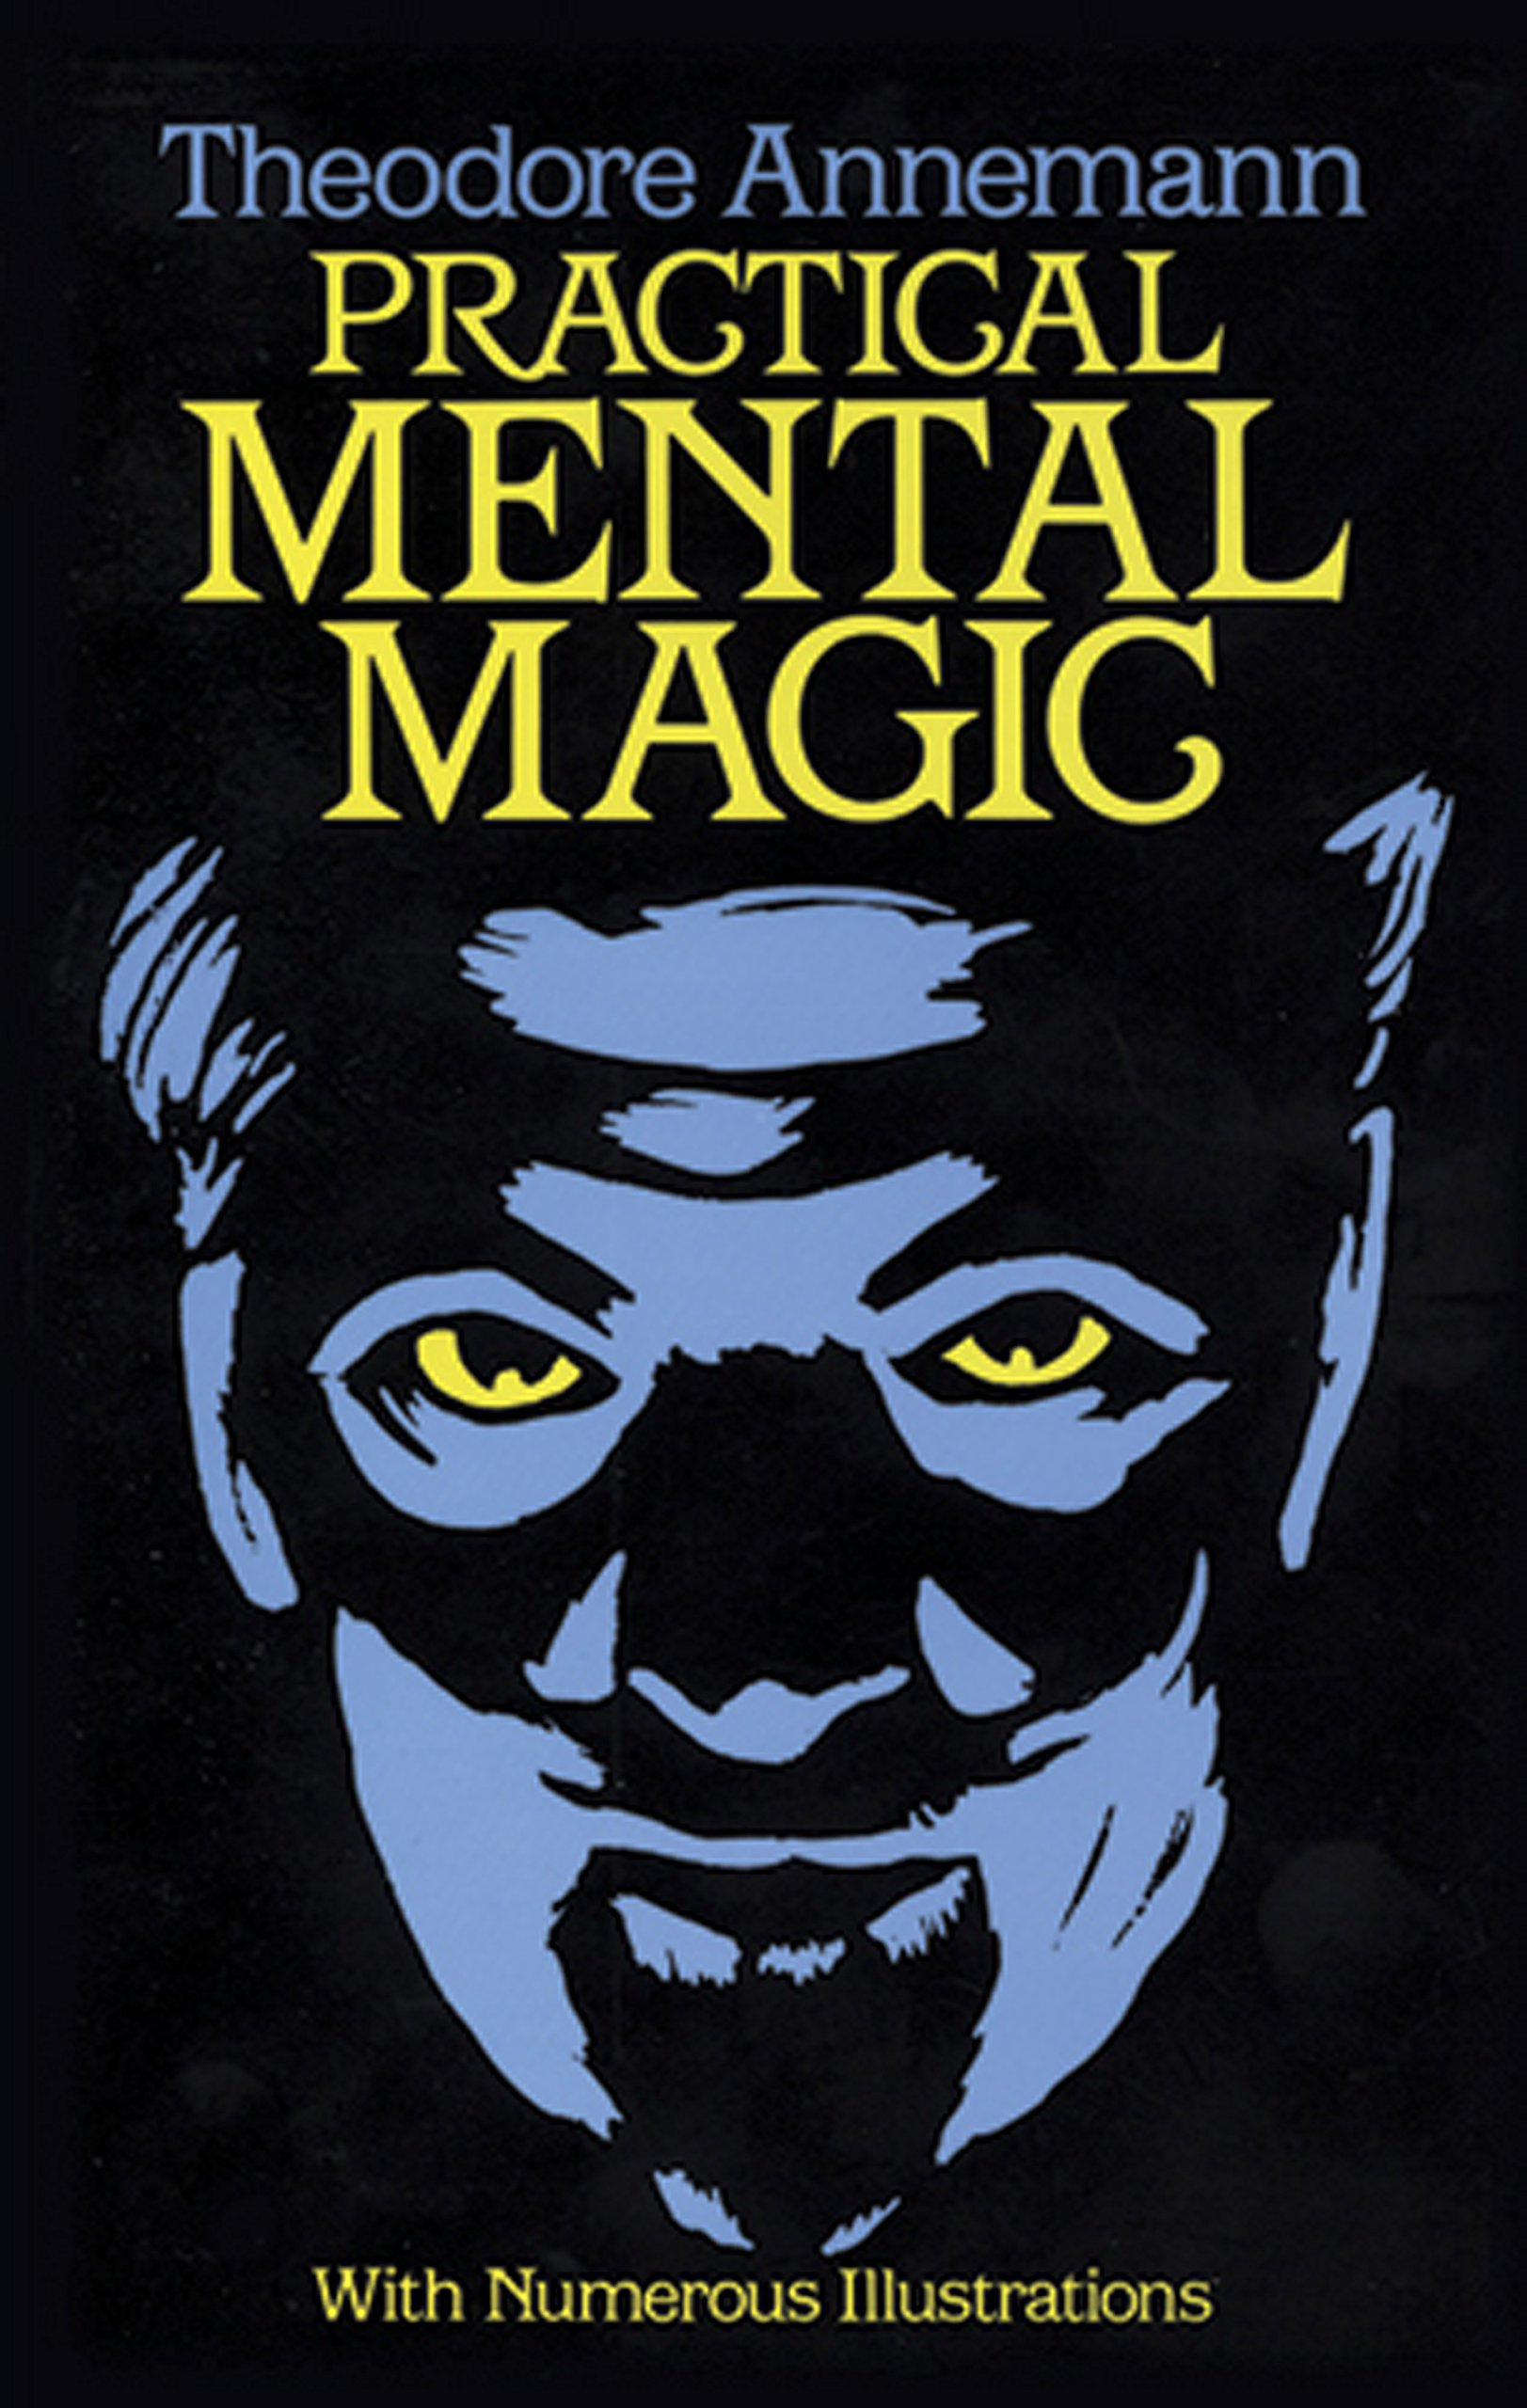 Practical Mental Magic by Theodore Anneman